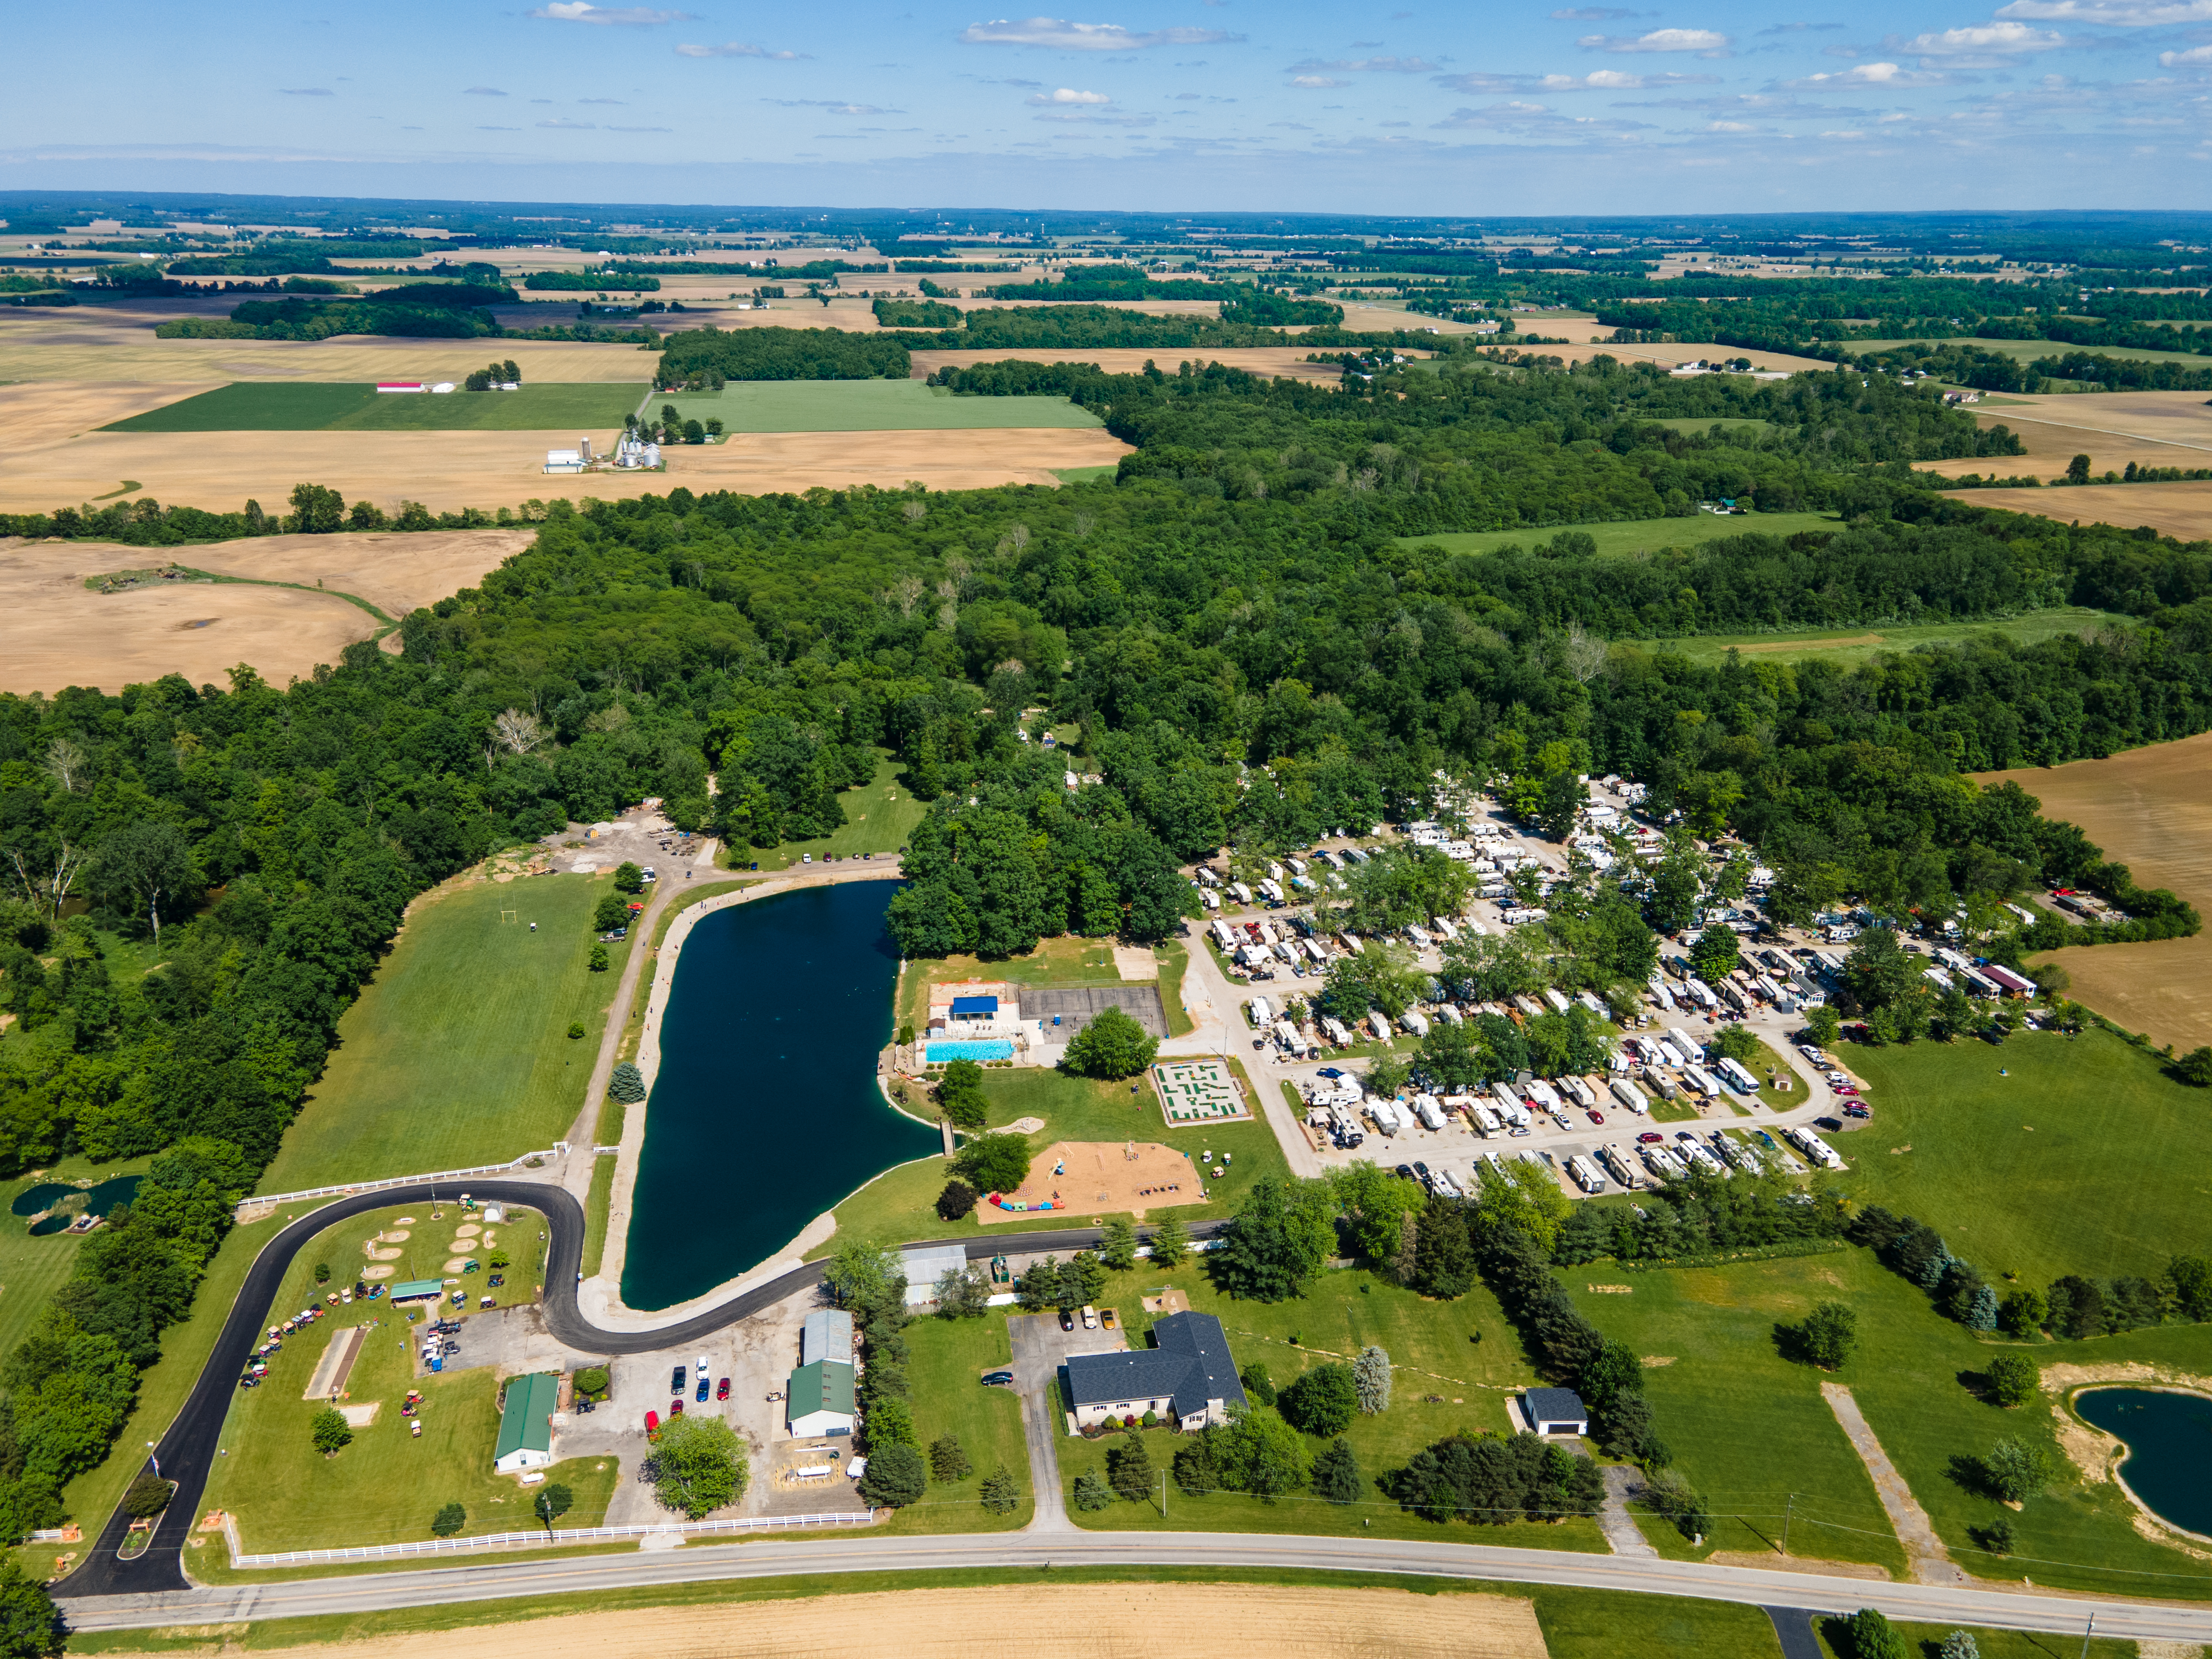 Campground aerial view facing East